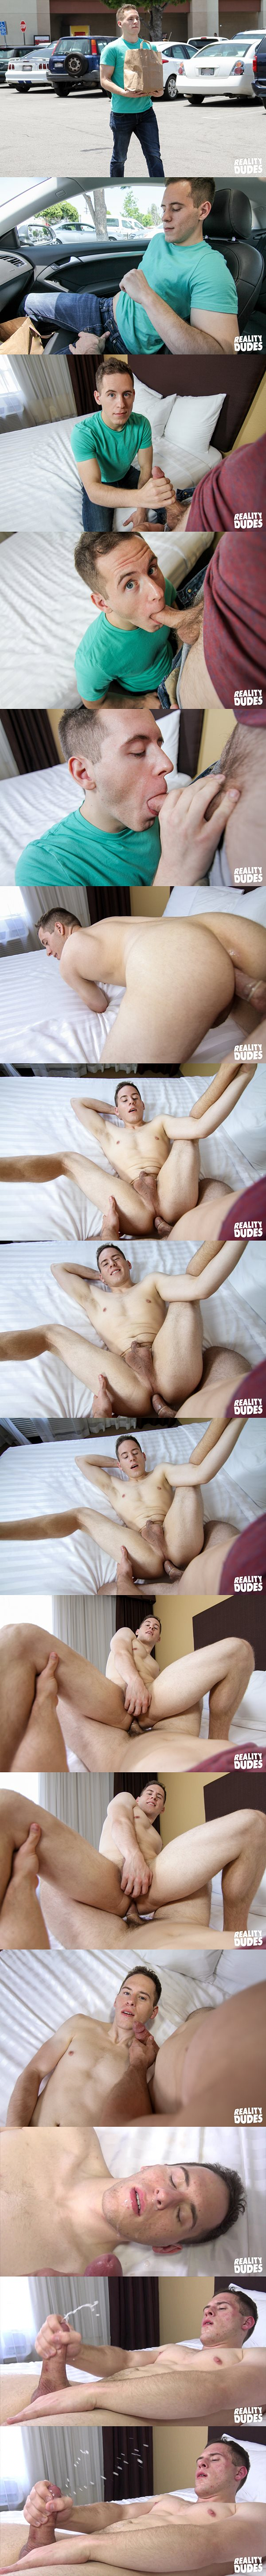 The cameraman fucks hot straight jock Alex's tight virgin ass at Realitydudes 02